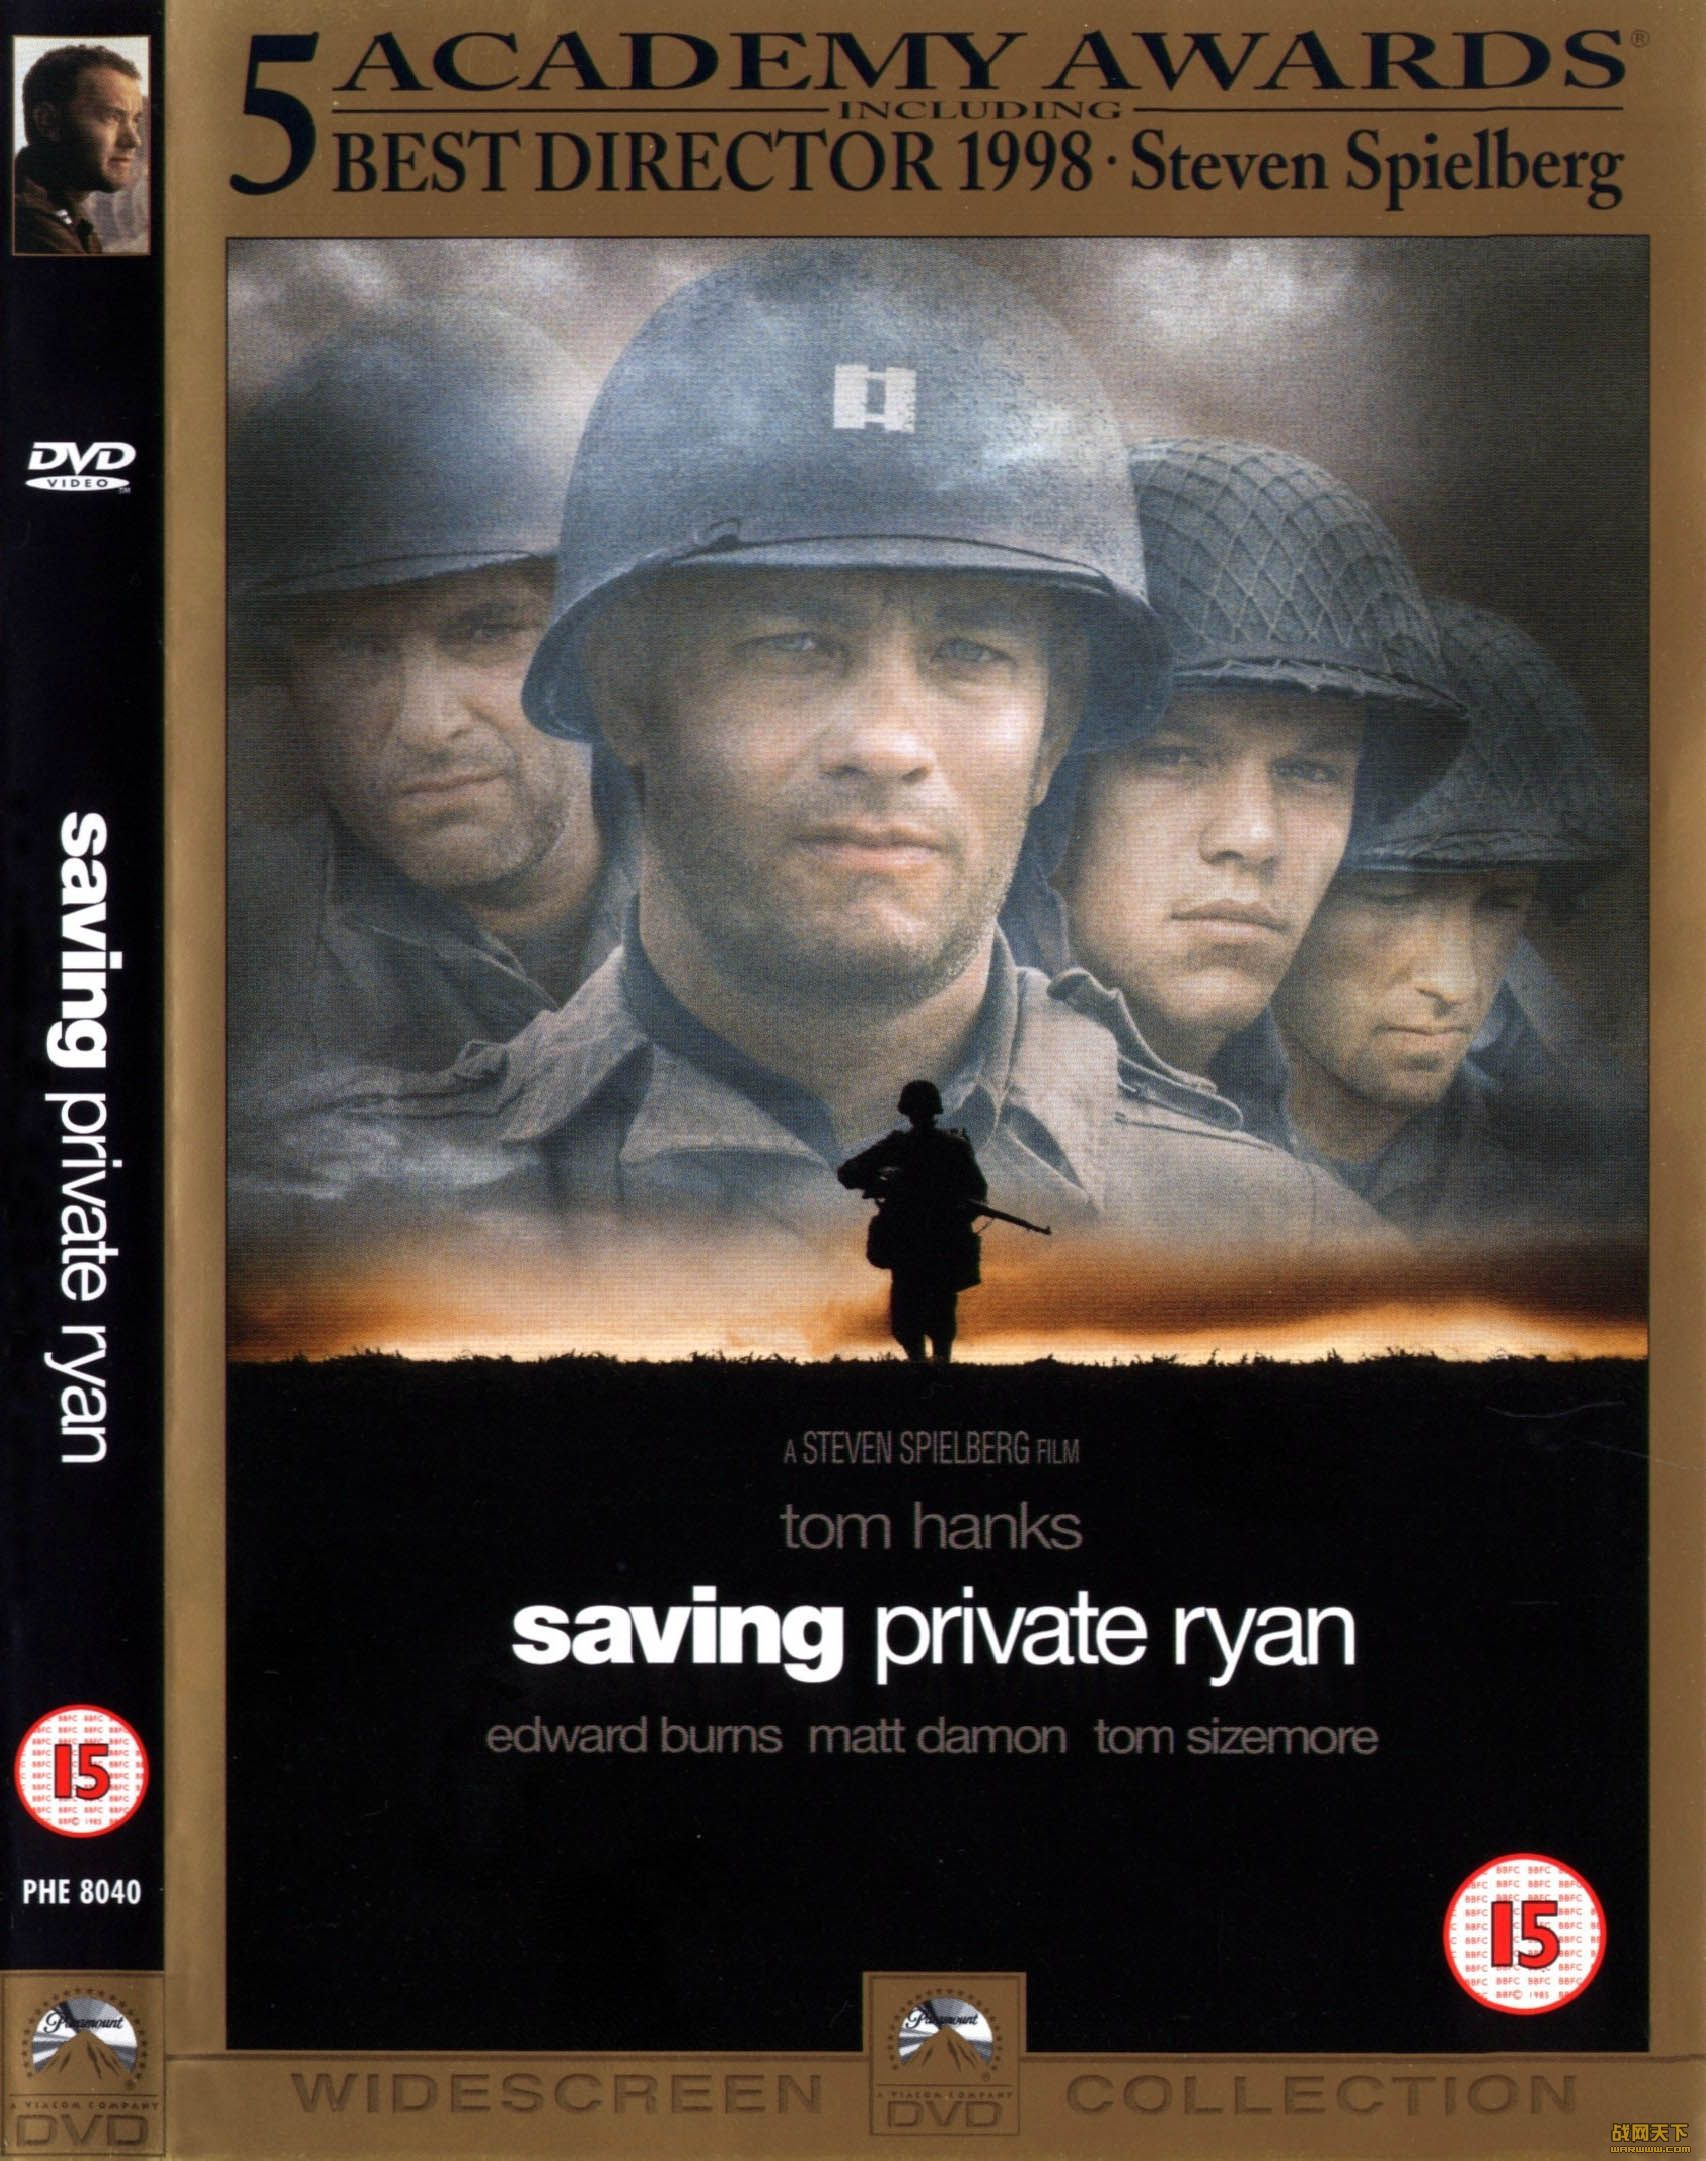 拯救大兵瑞恩(Saving Private Ryan)海报